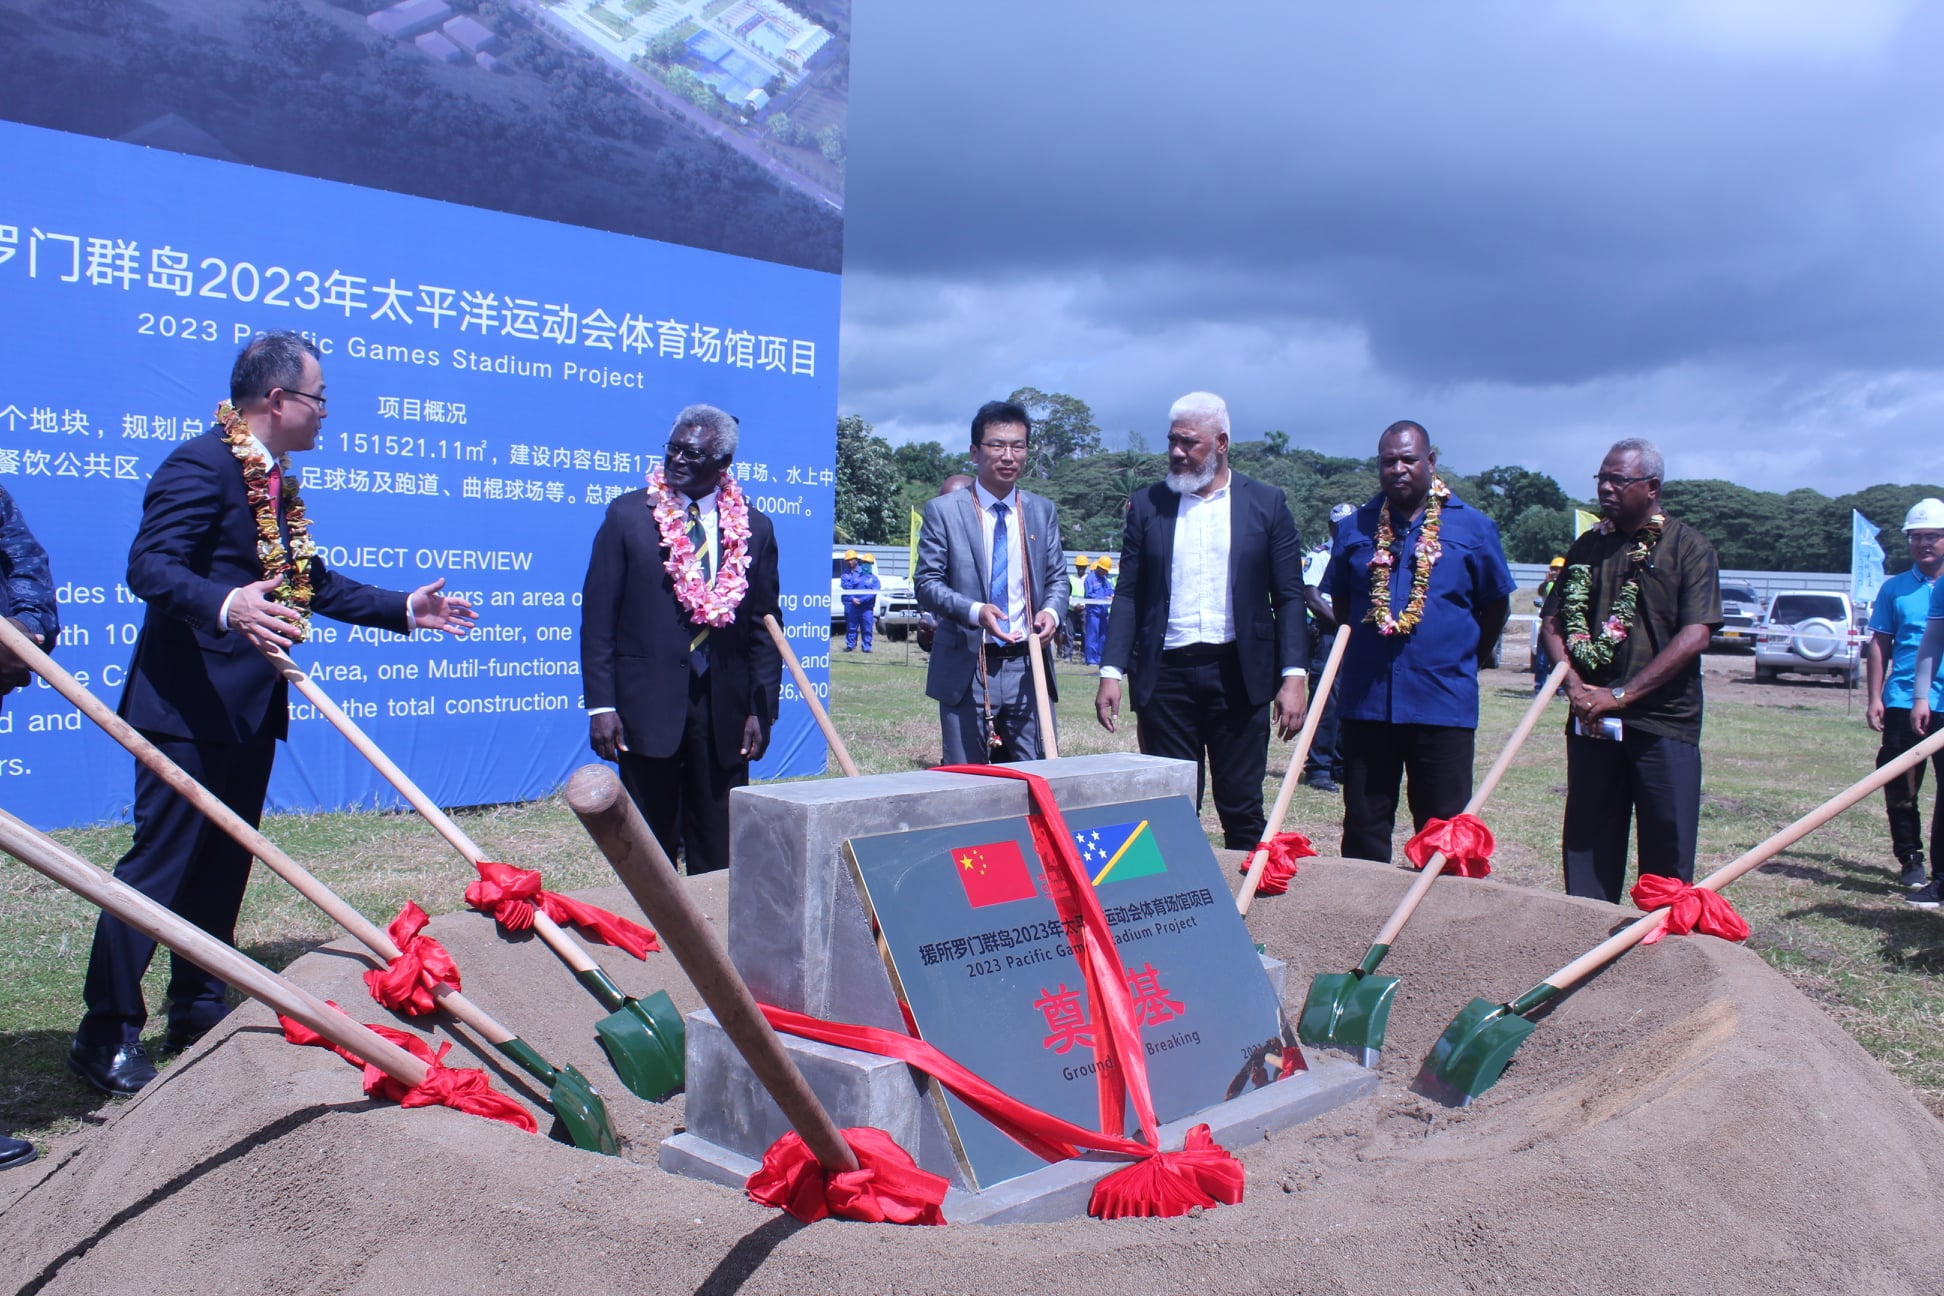 Solomon Islands holds ground-breaking ceremony for Pacific Games stadium project